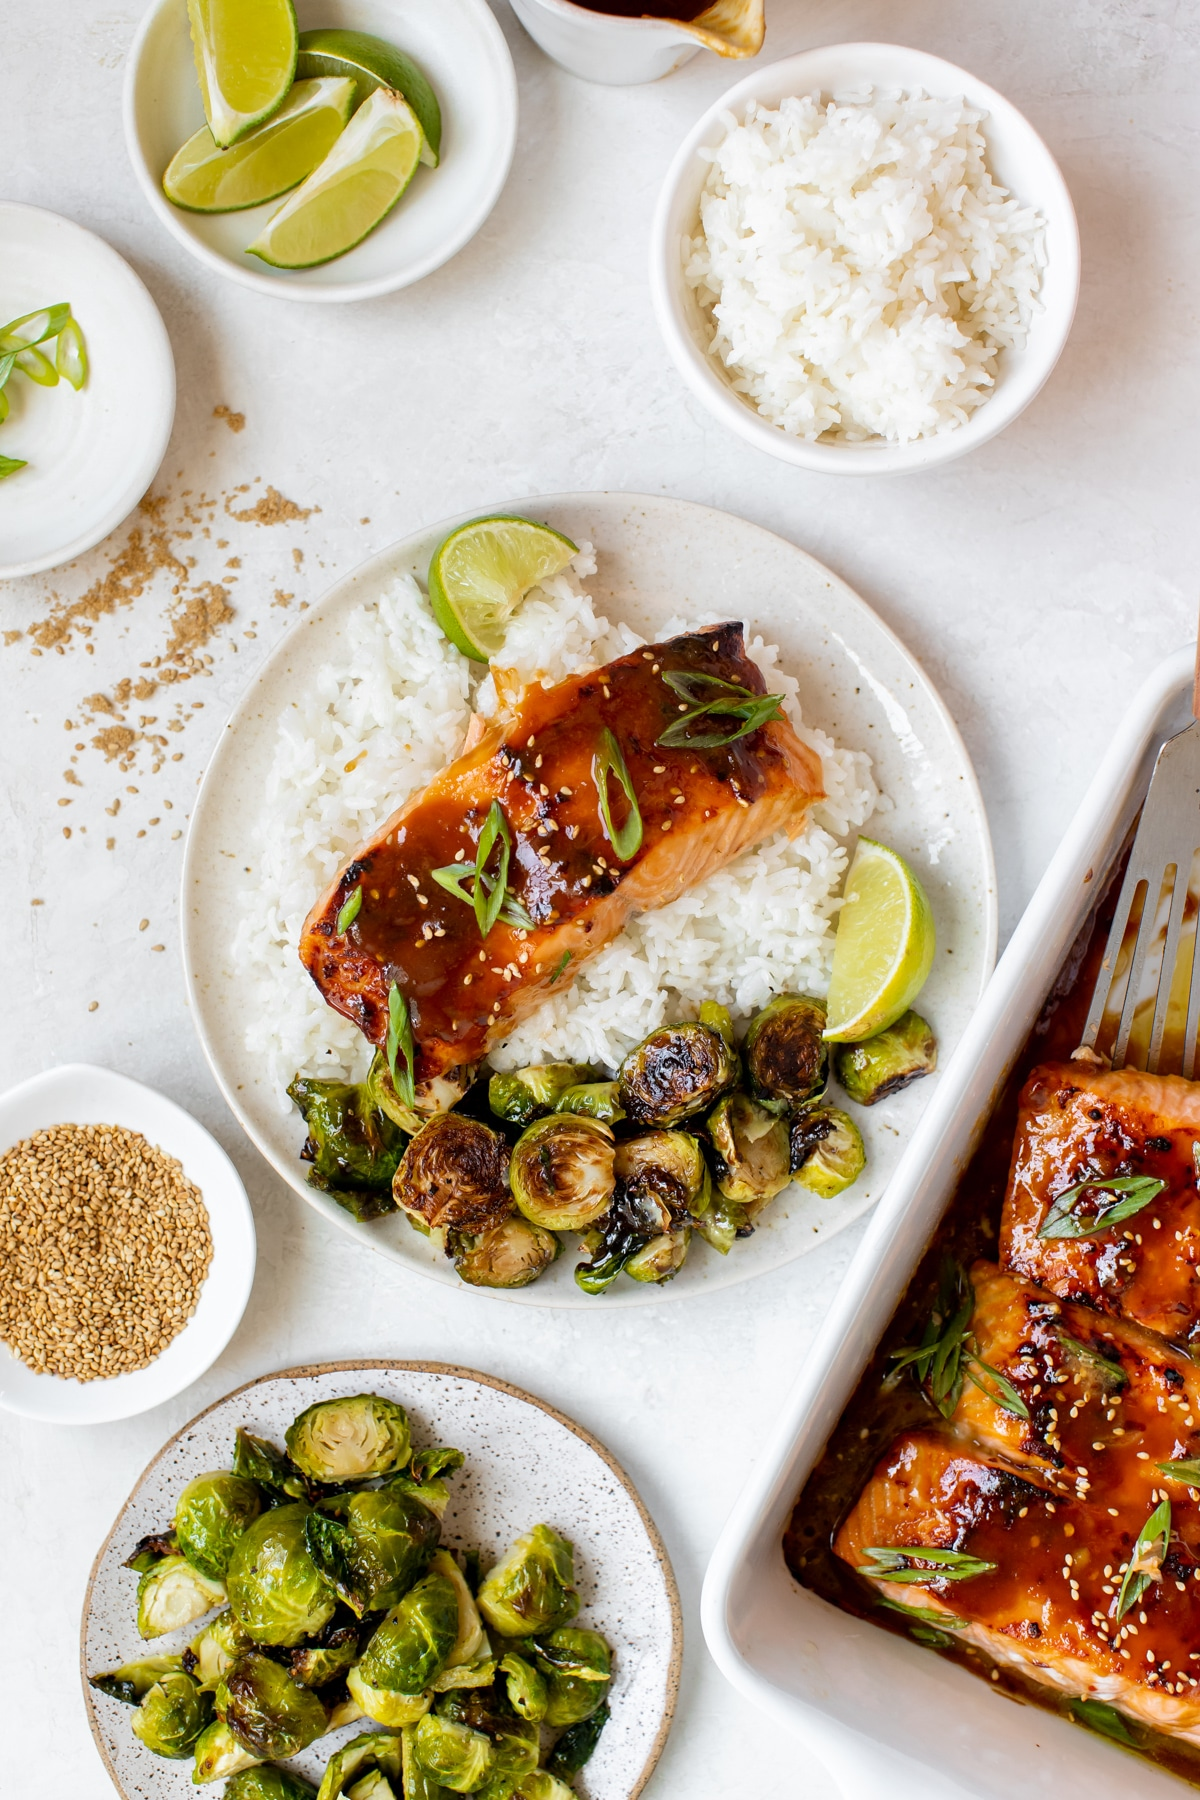 salmon on a white specked plate with roasted brussels and white rice